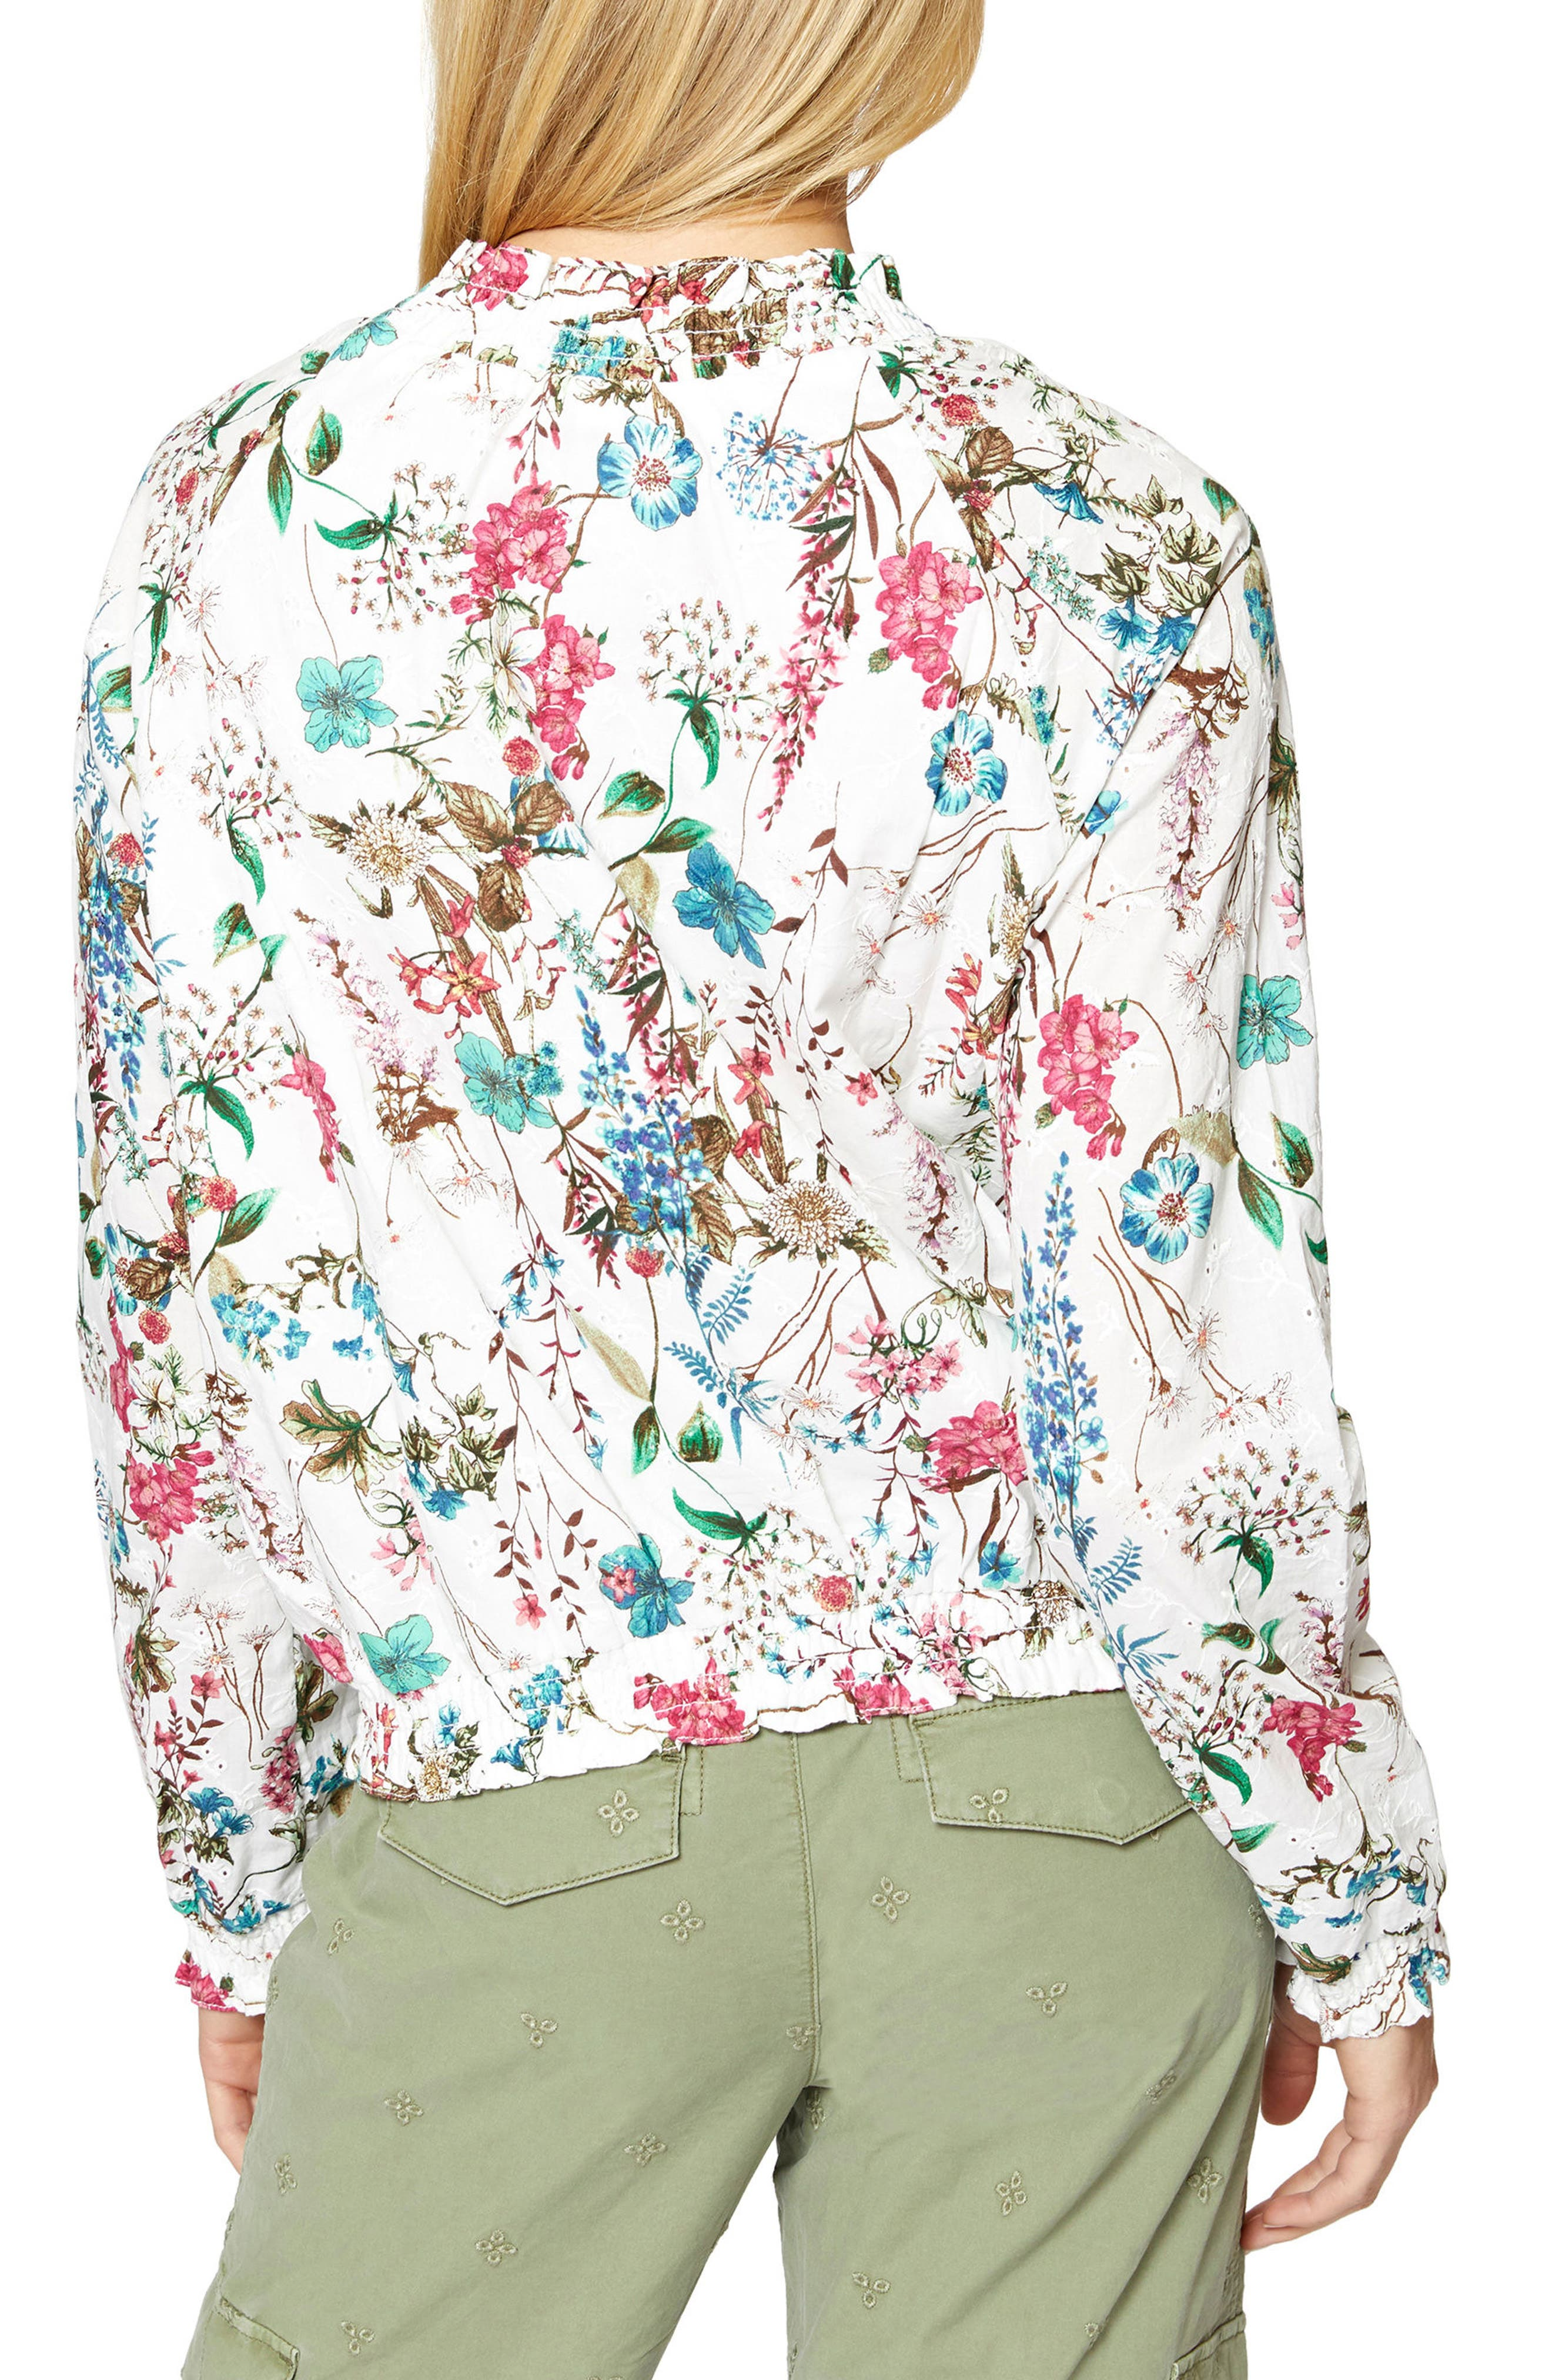 In Bloom Eyelet Bomber Jacket,                             Alternate thumbnail 2, color,                             CHEERFUL NATURE